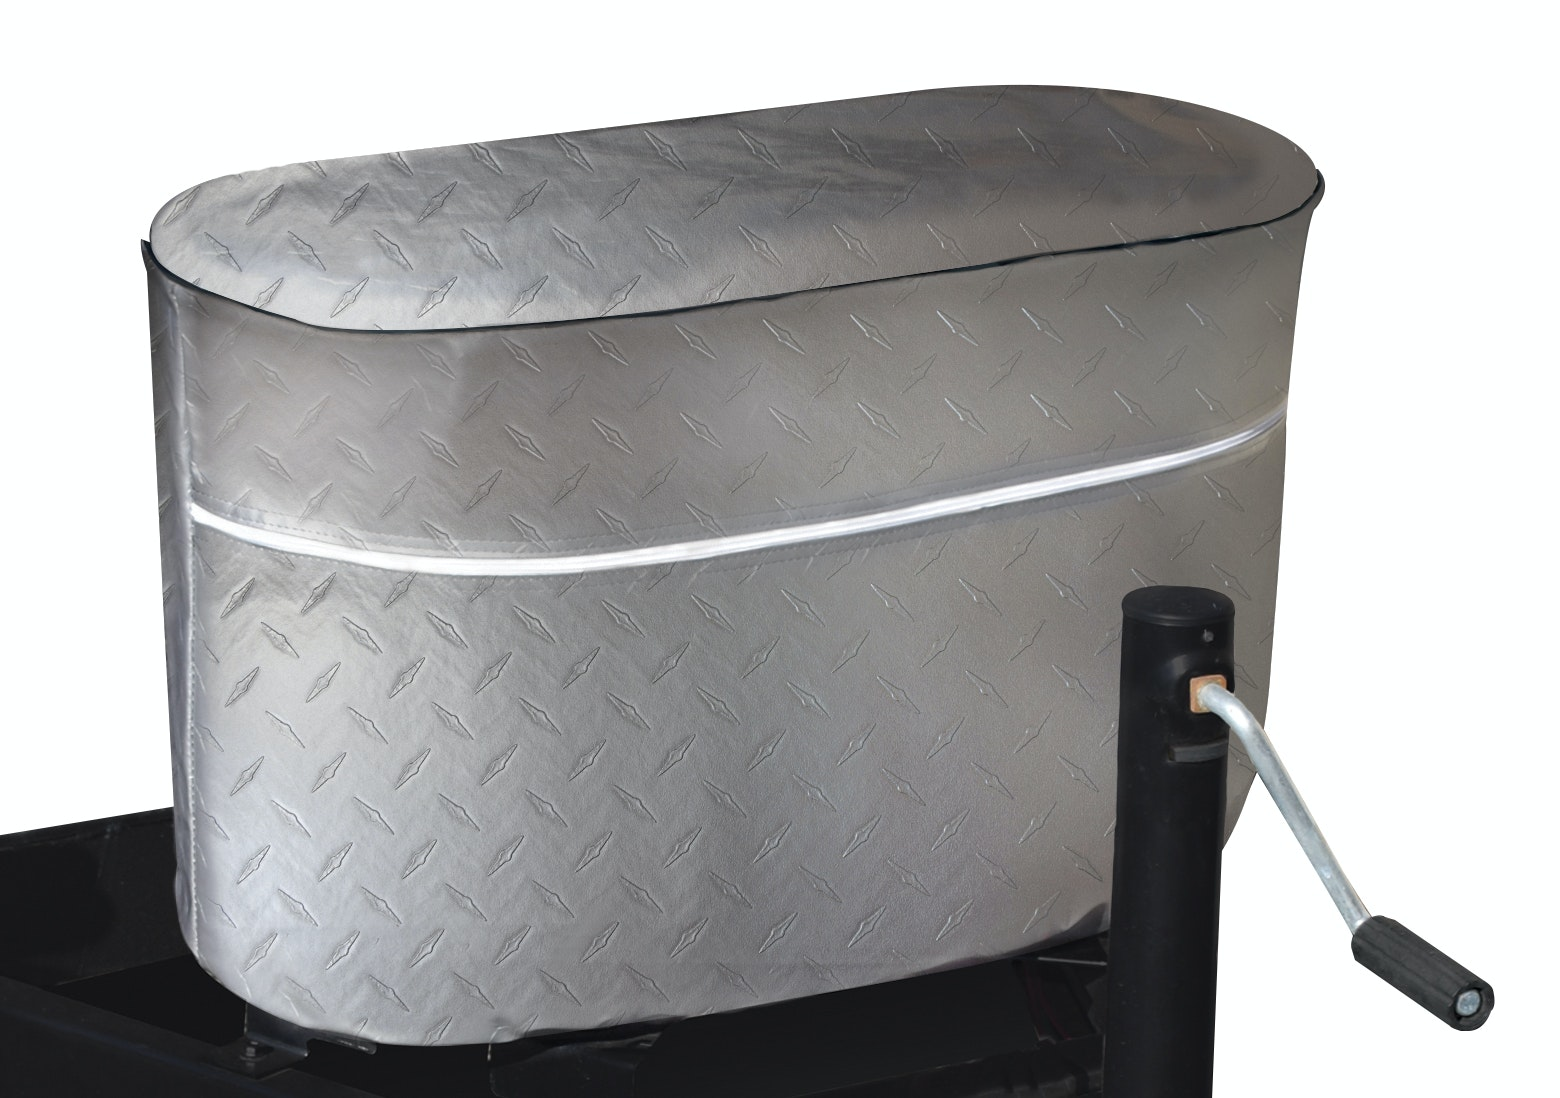 Product Image for Diamond Plated Propane Tank Cover for 20 lb./5 Gallon Tank